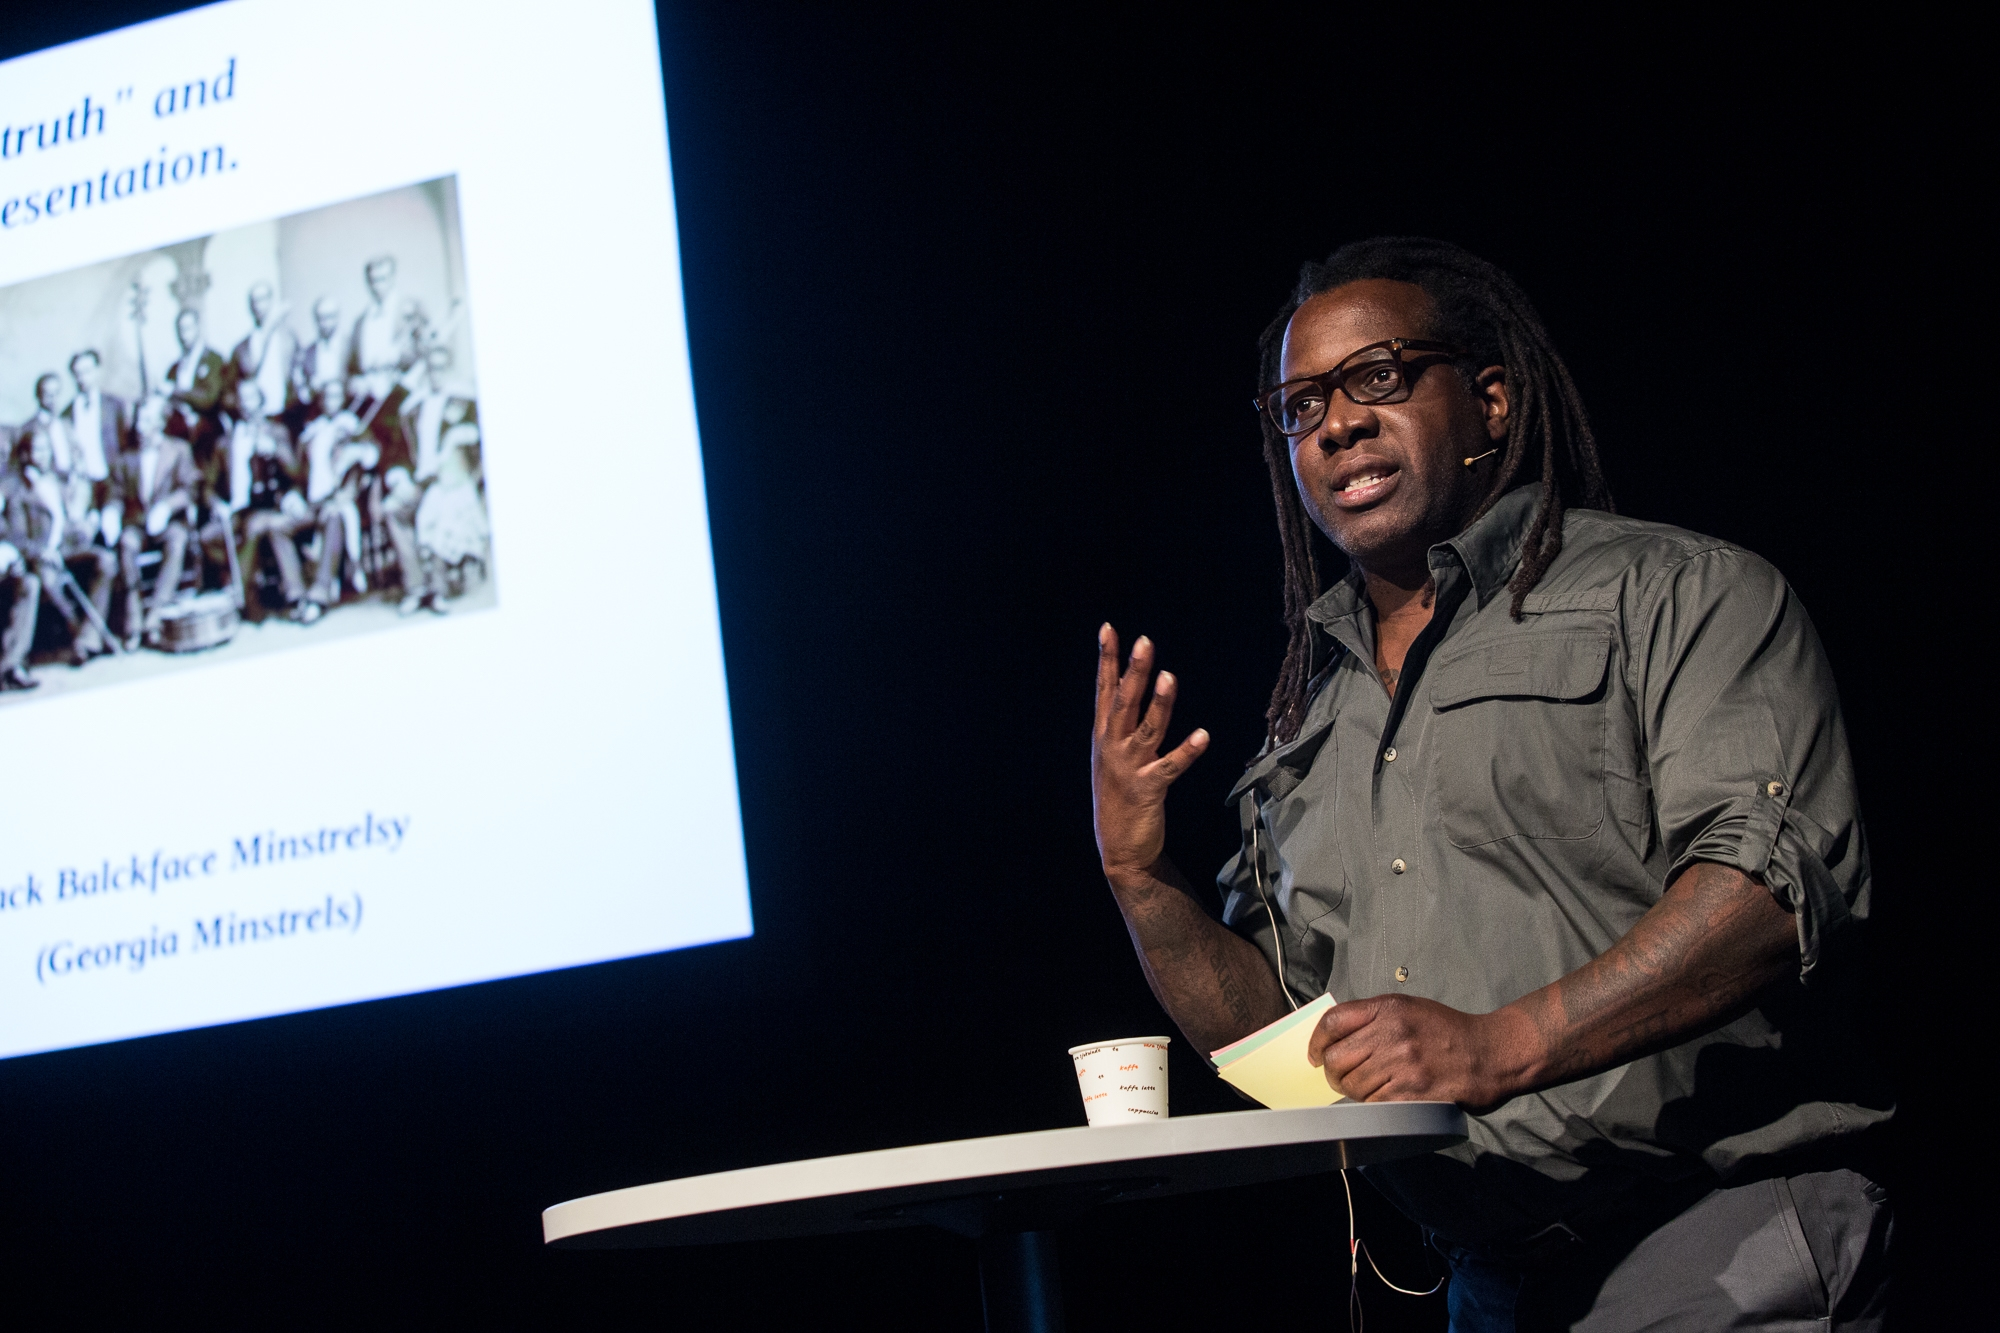 Addae Moon - Director of Museum Theatre at the Atlanta History Center (shown here speaking at the Ibsen Theatre Conference in Norway)